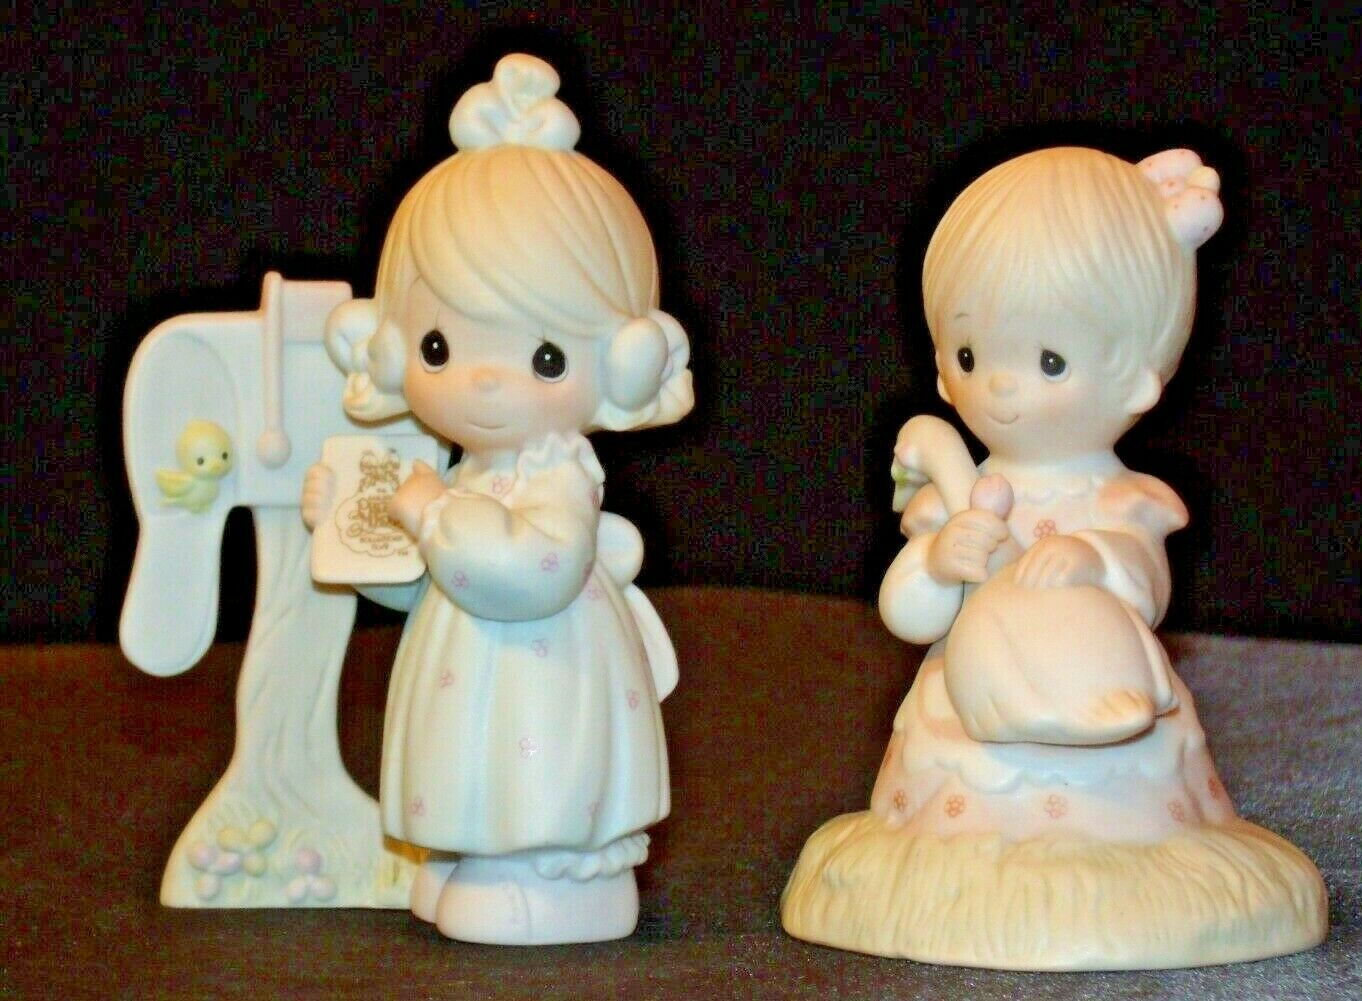 1980 and 1990 Precious Figurines Moments 2 Pieces AA-191821  Vintage Collectible